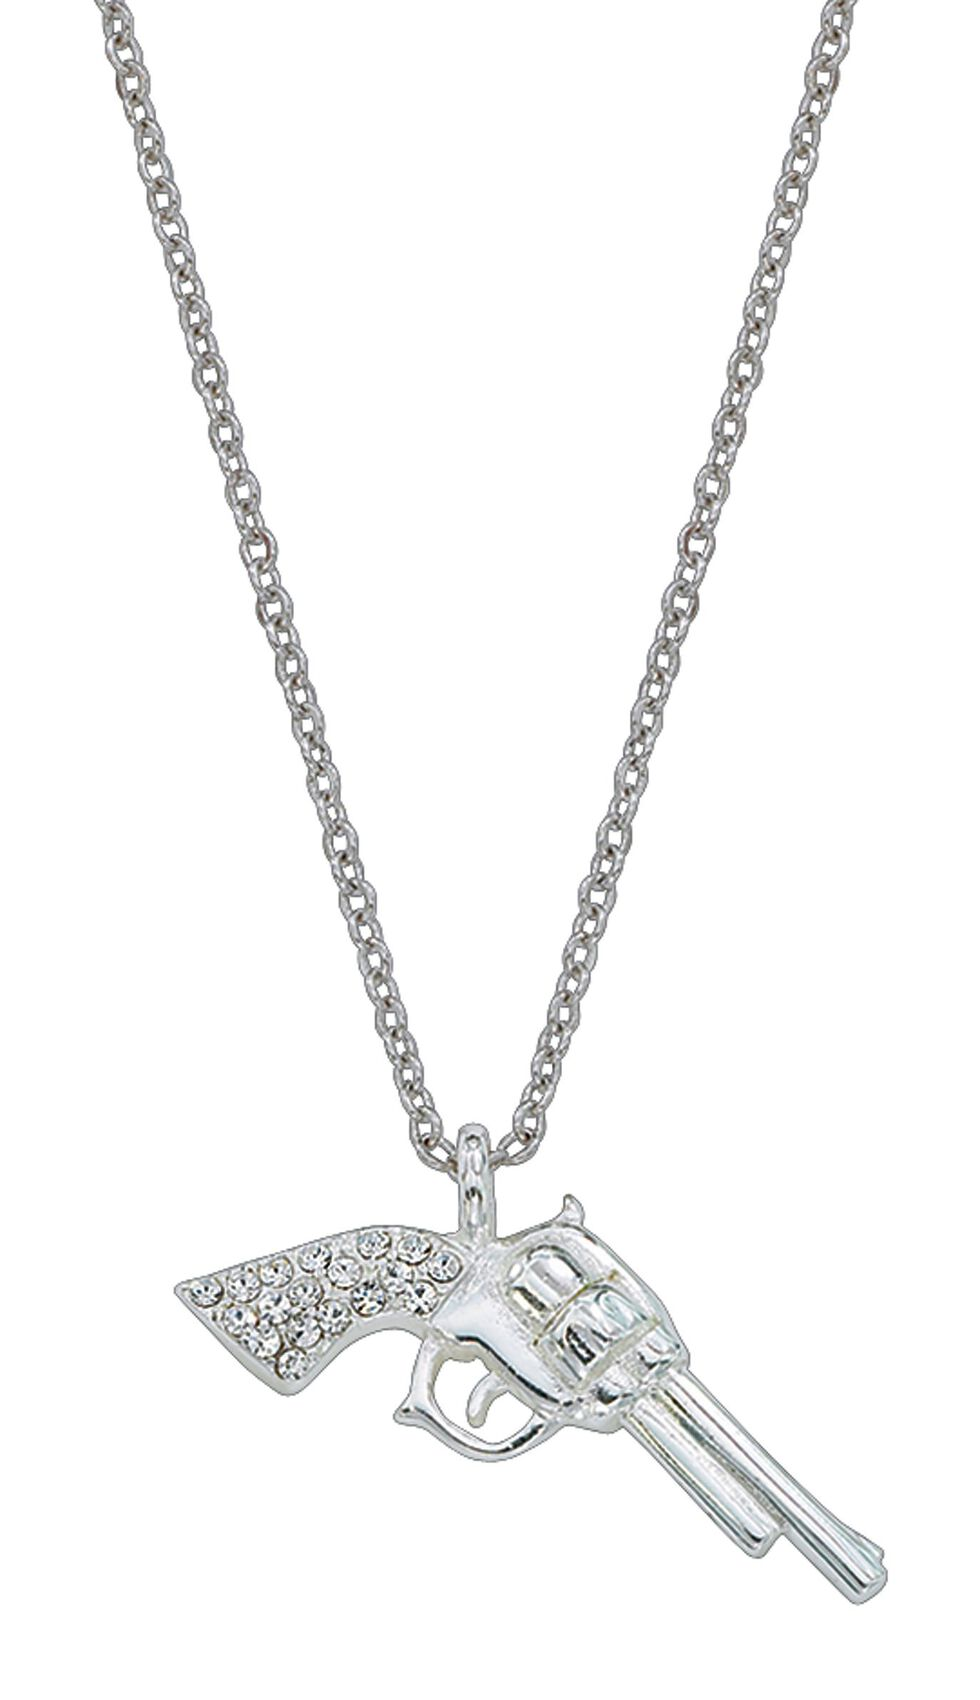 Montana Silversmiths Pistol Charm Necklace, Silver, hi-res